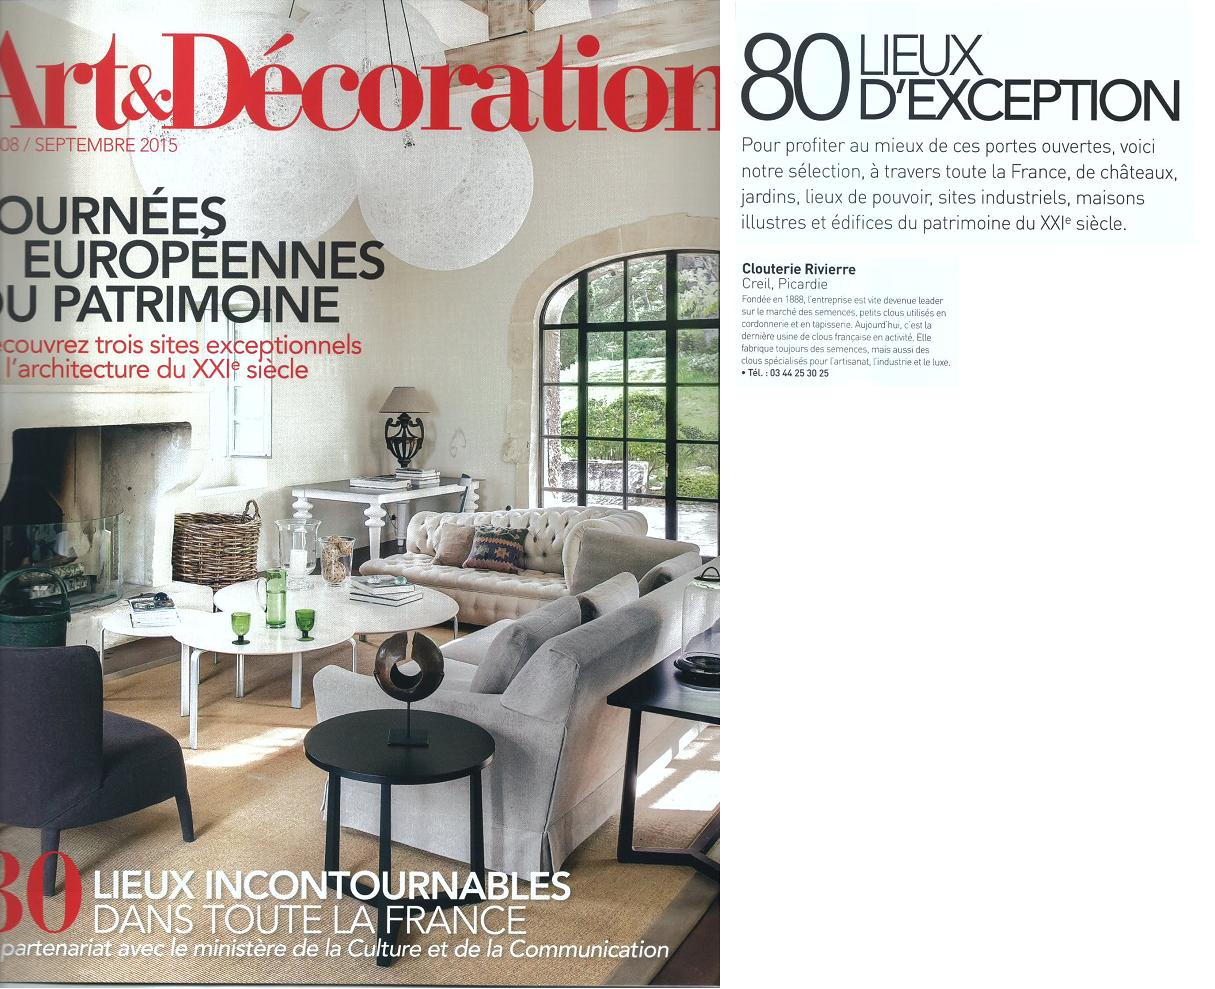 Articles de presse clouterie rivierre for Art et decoration magazine feuilleter